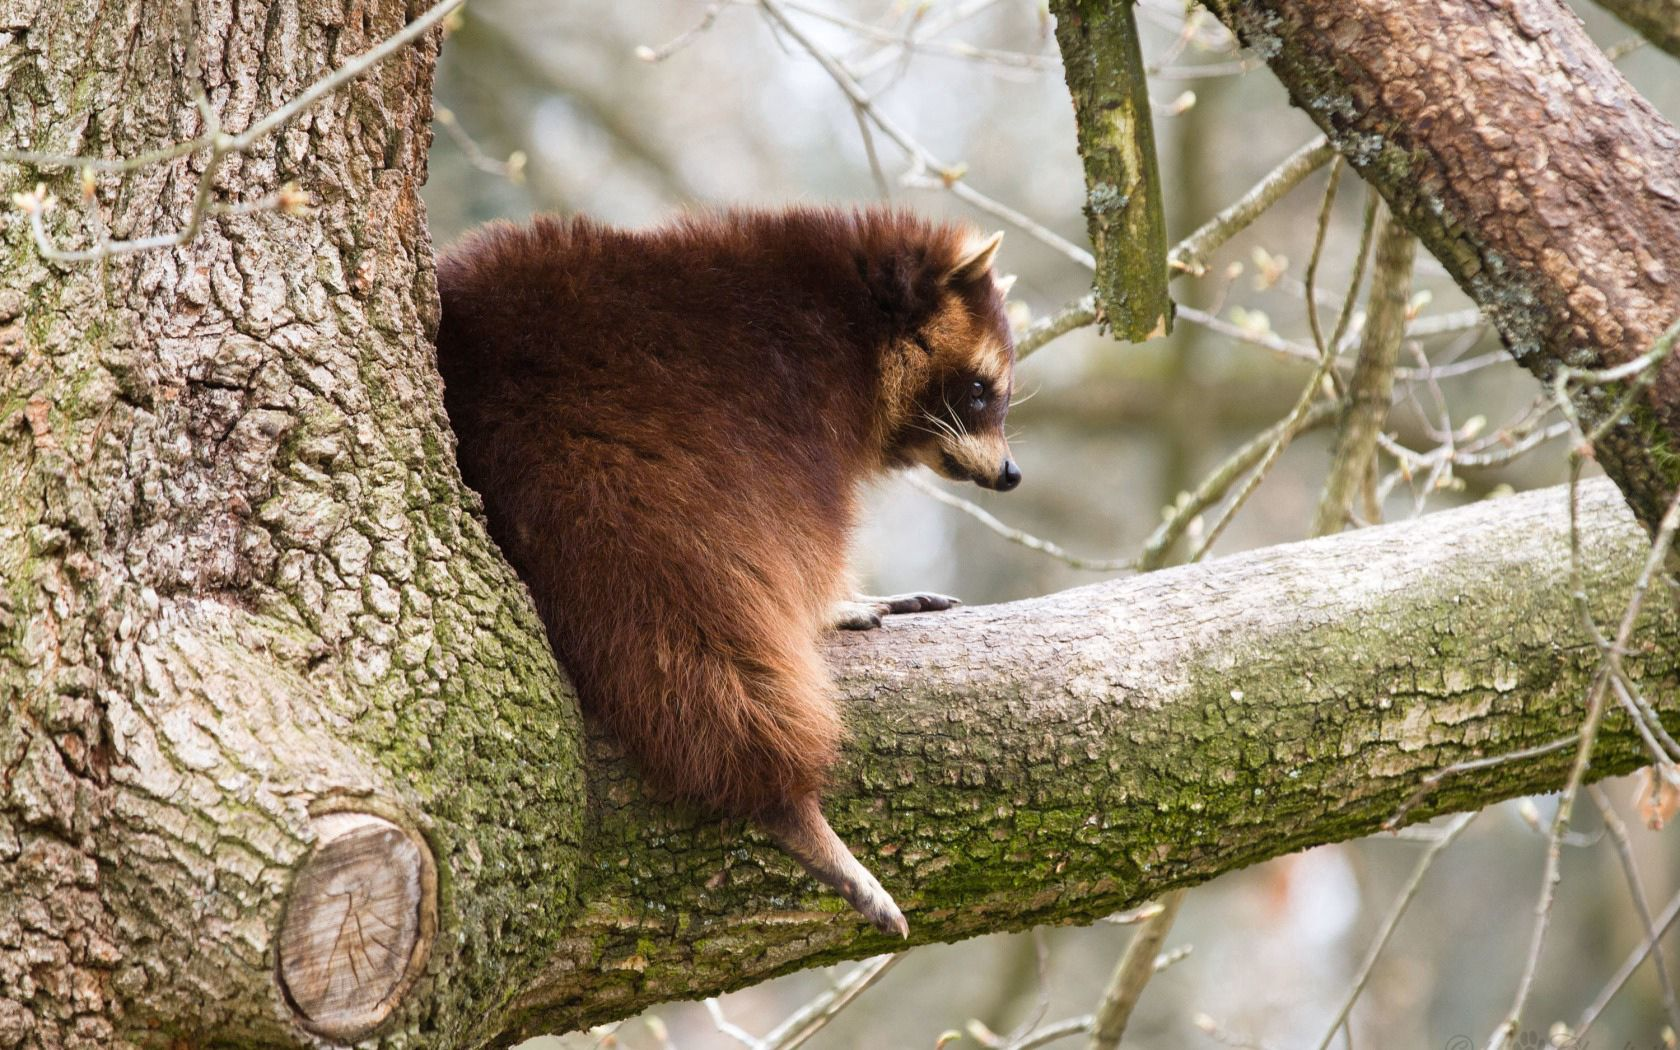 130660 Screensavers and Wallpapers Raccoon for phone. Download Animals, Wood, Tree, Branch, Fat, Thick, Raccoon pictures for free